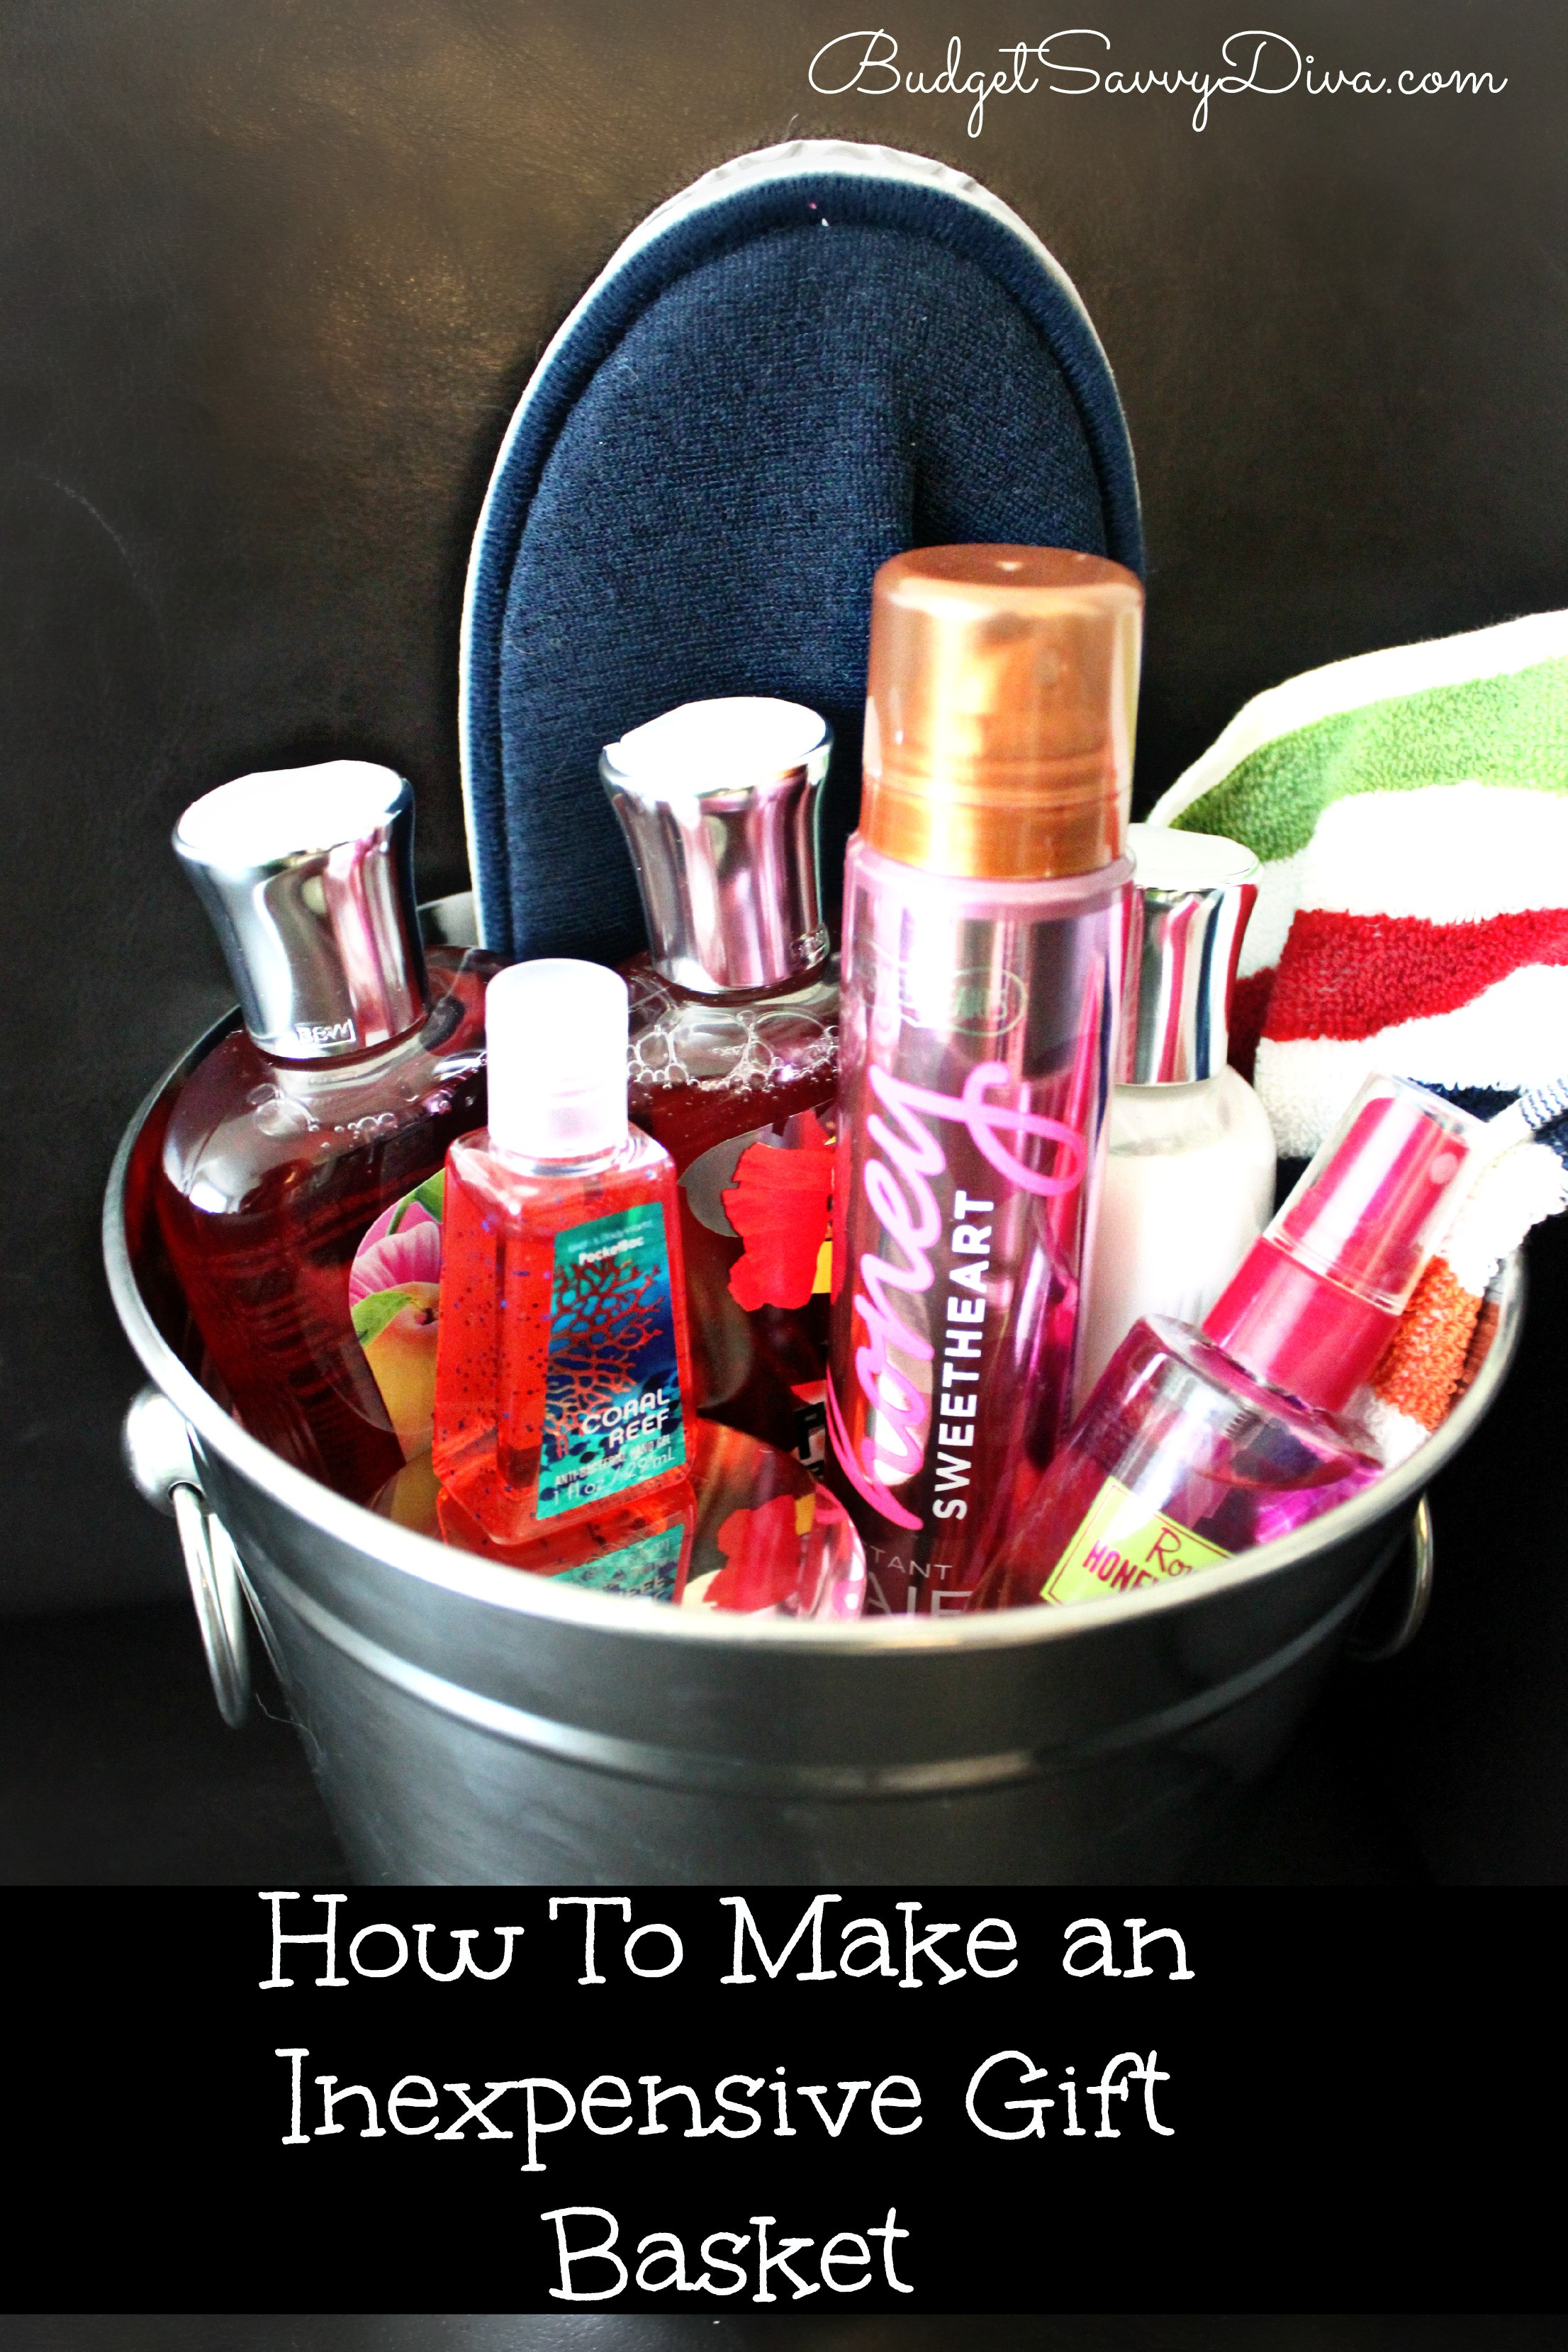 Best ideas about Inexpensive Gift Baskets Ideas . Save or Pin How to Make an Inexpensive Gift Basket Now.